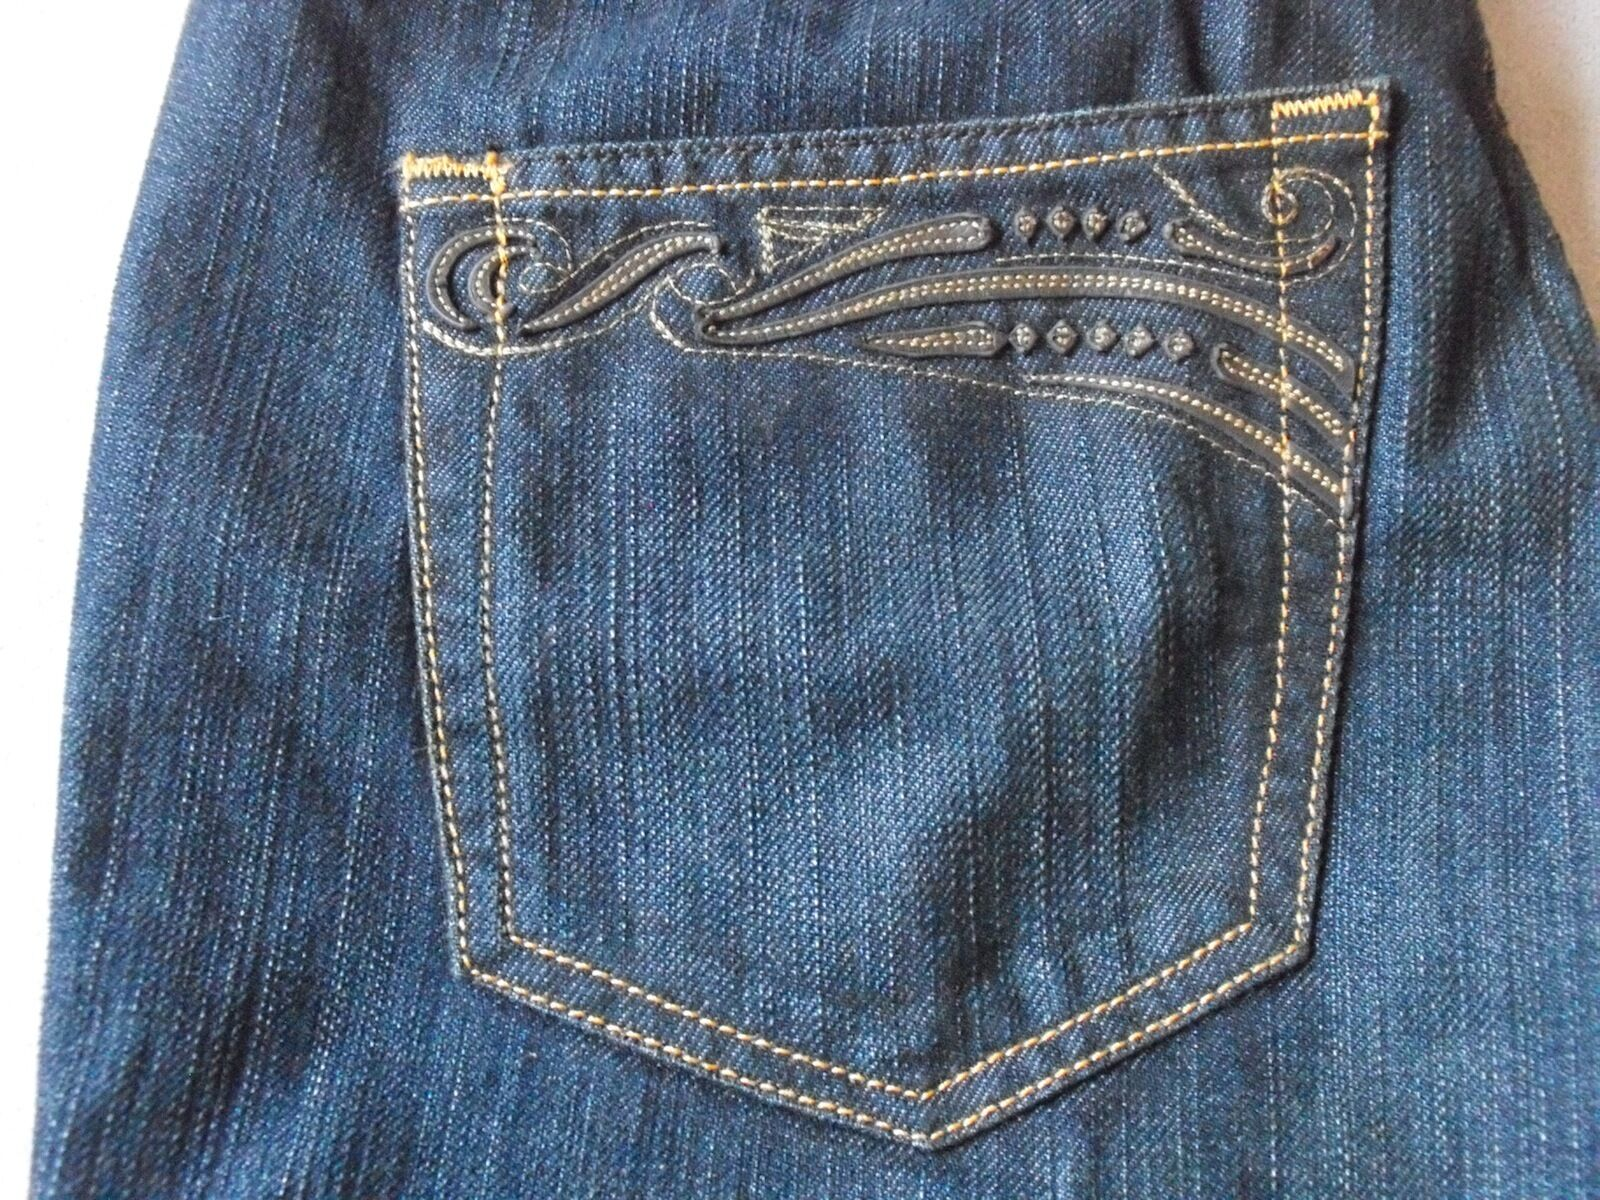 DIESEL RYOTH 8AB RARE WOMENS LOWRISE BOOTCUT JEANS SIZE 30x34 NEW MADE IN ITALY